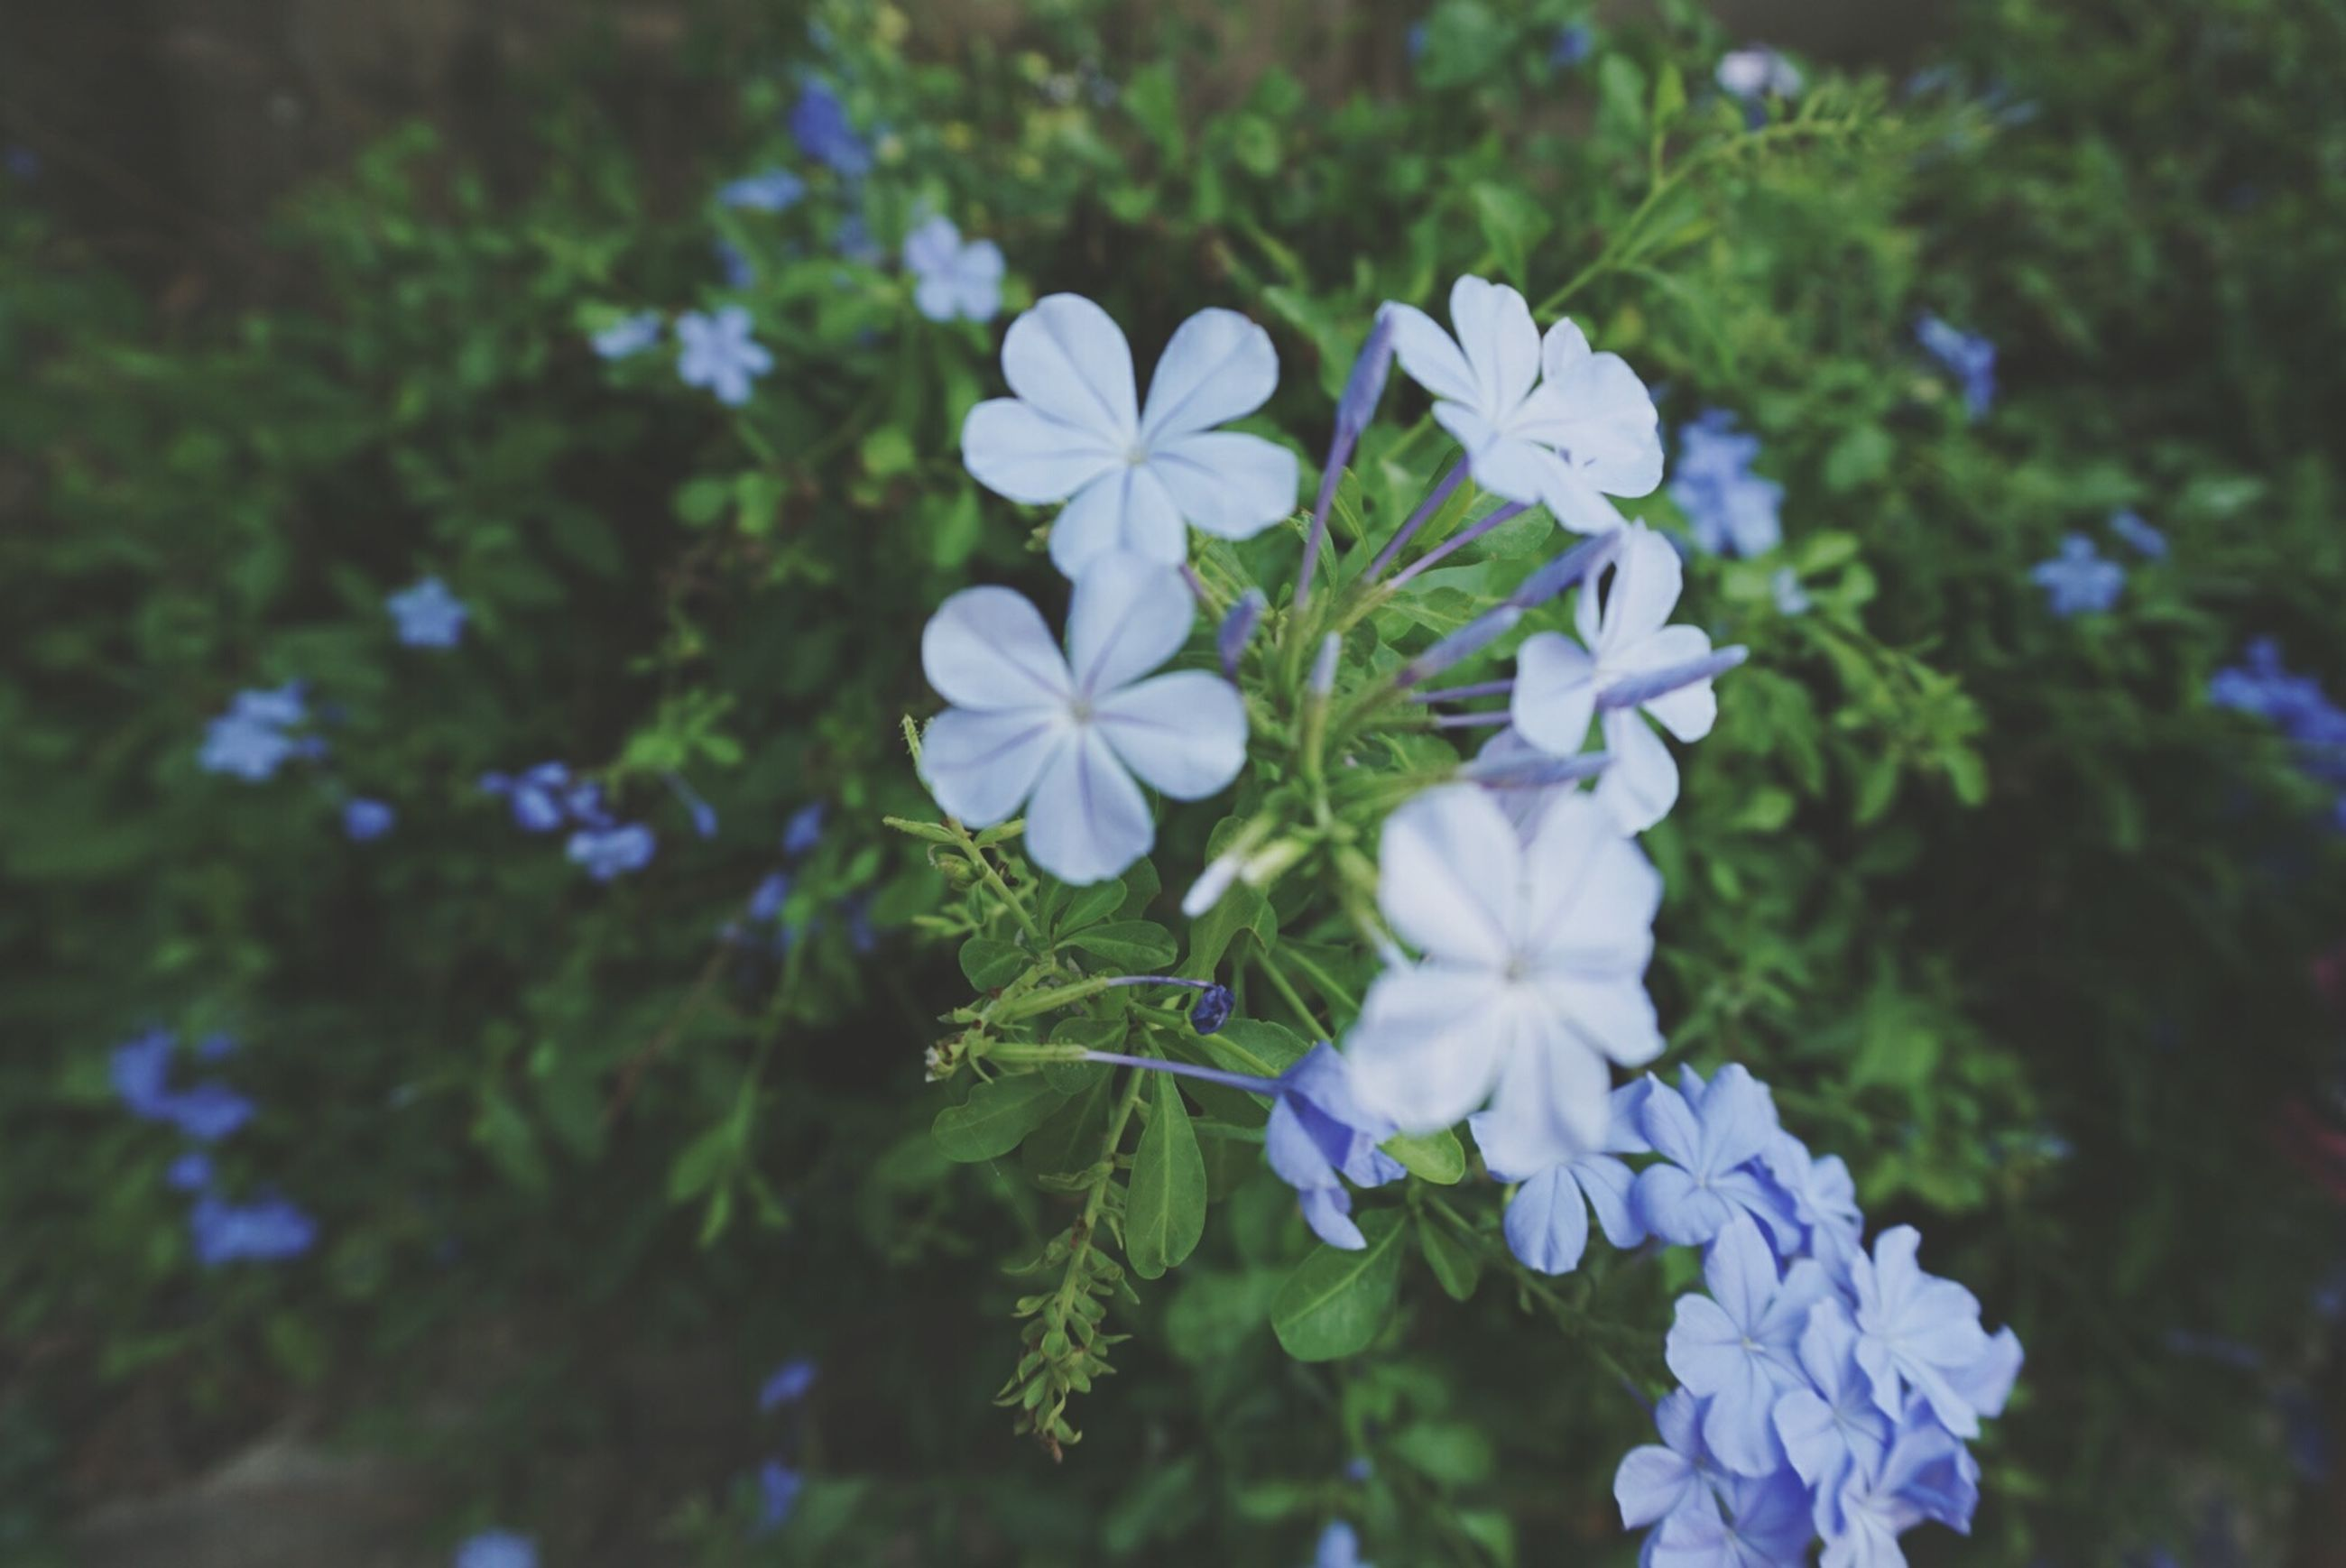 flower, growth, freshness, fragility, petal, purple, beauty in nature, focus on foreground, blooming, plant, nature, flower head, blue, close-up, in bloom, white color, park - man made space, selective focus, day, stem